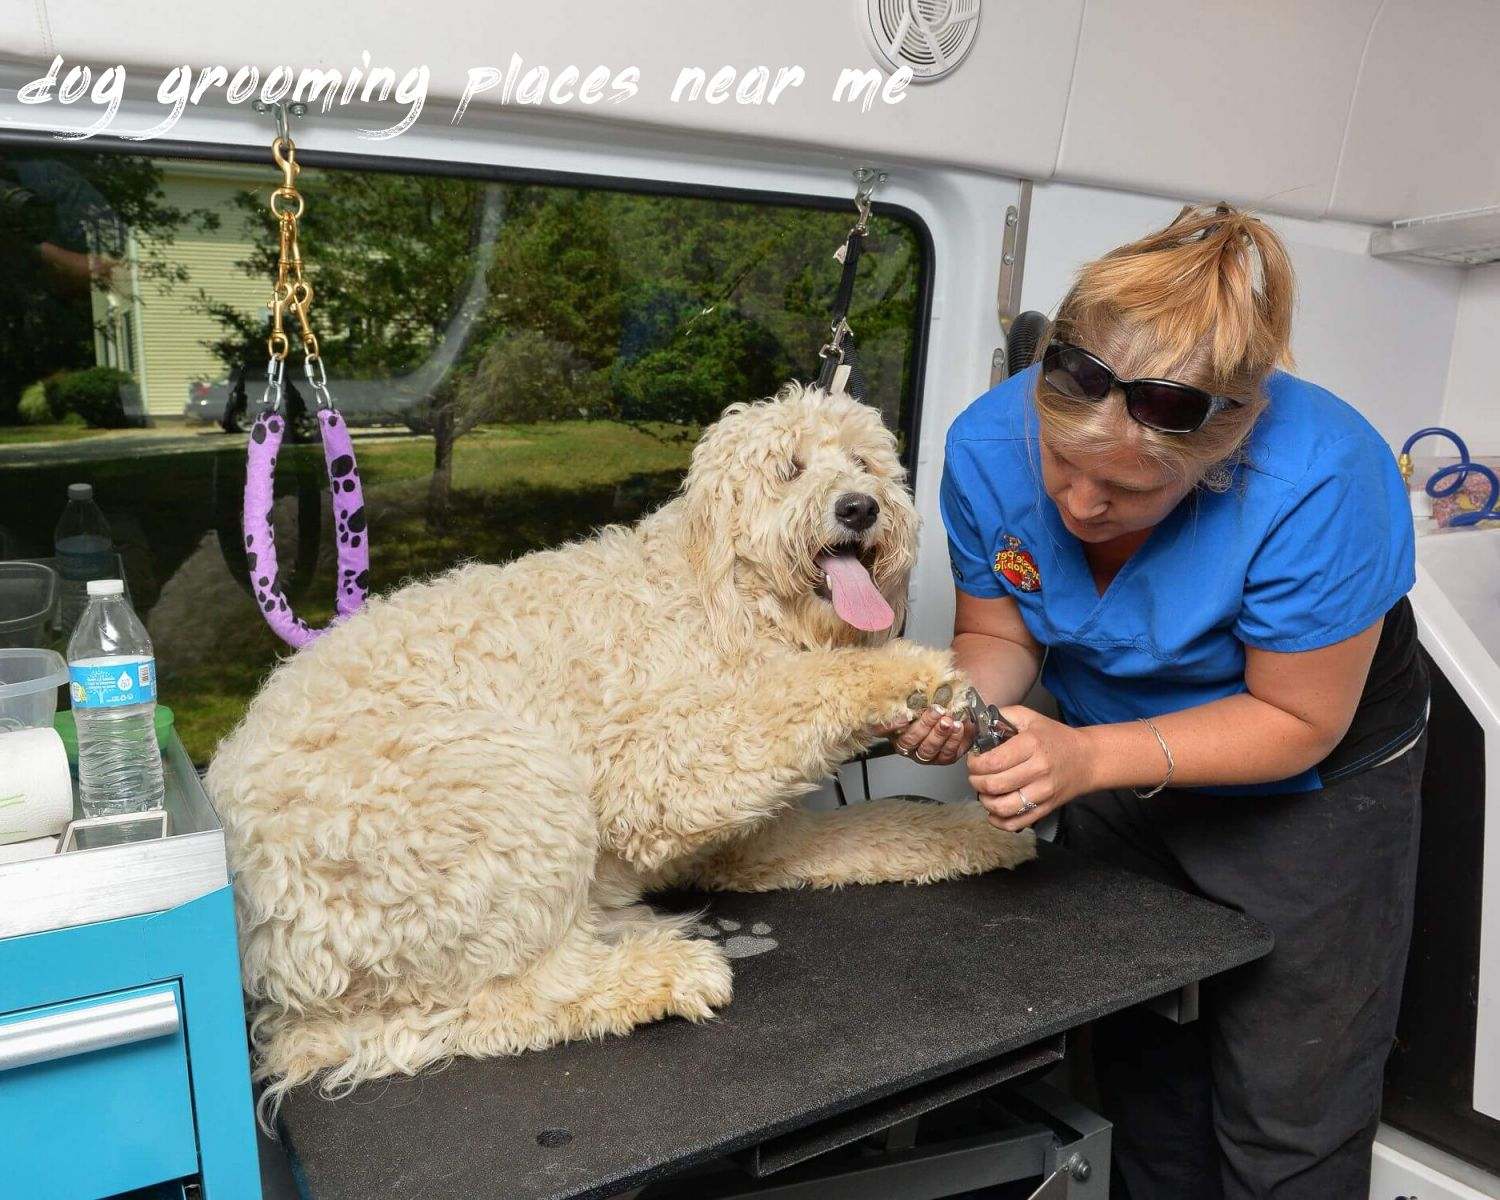 dog grooming places near me Review